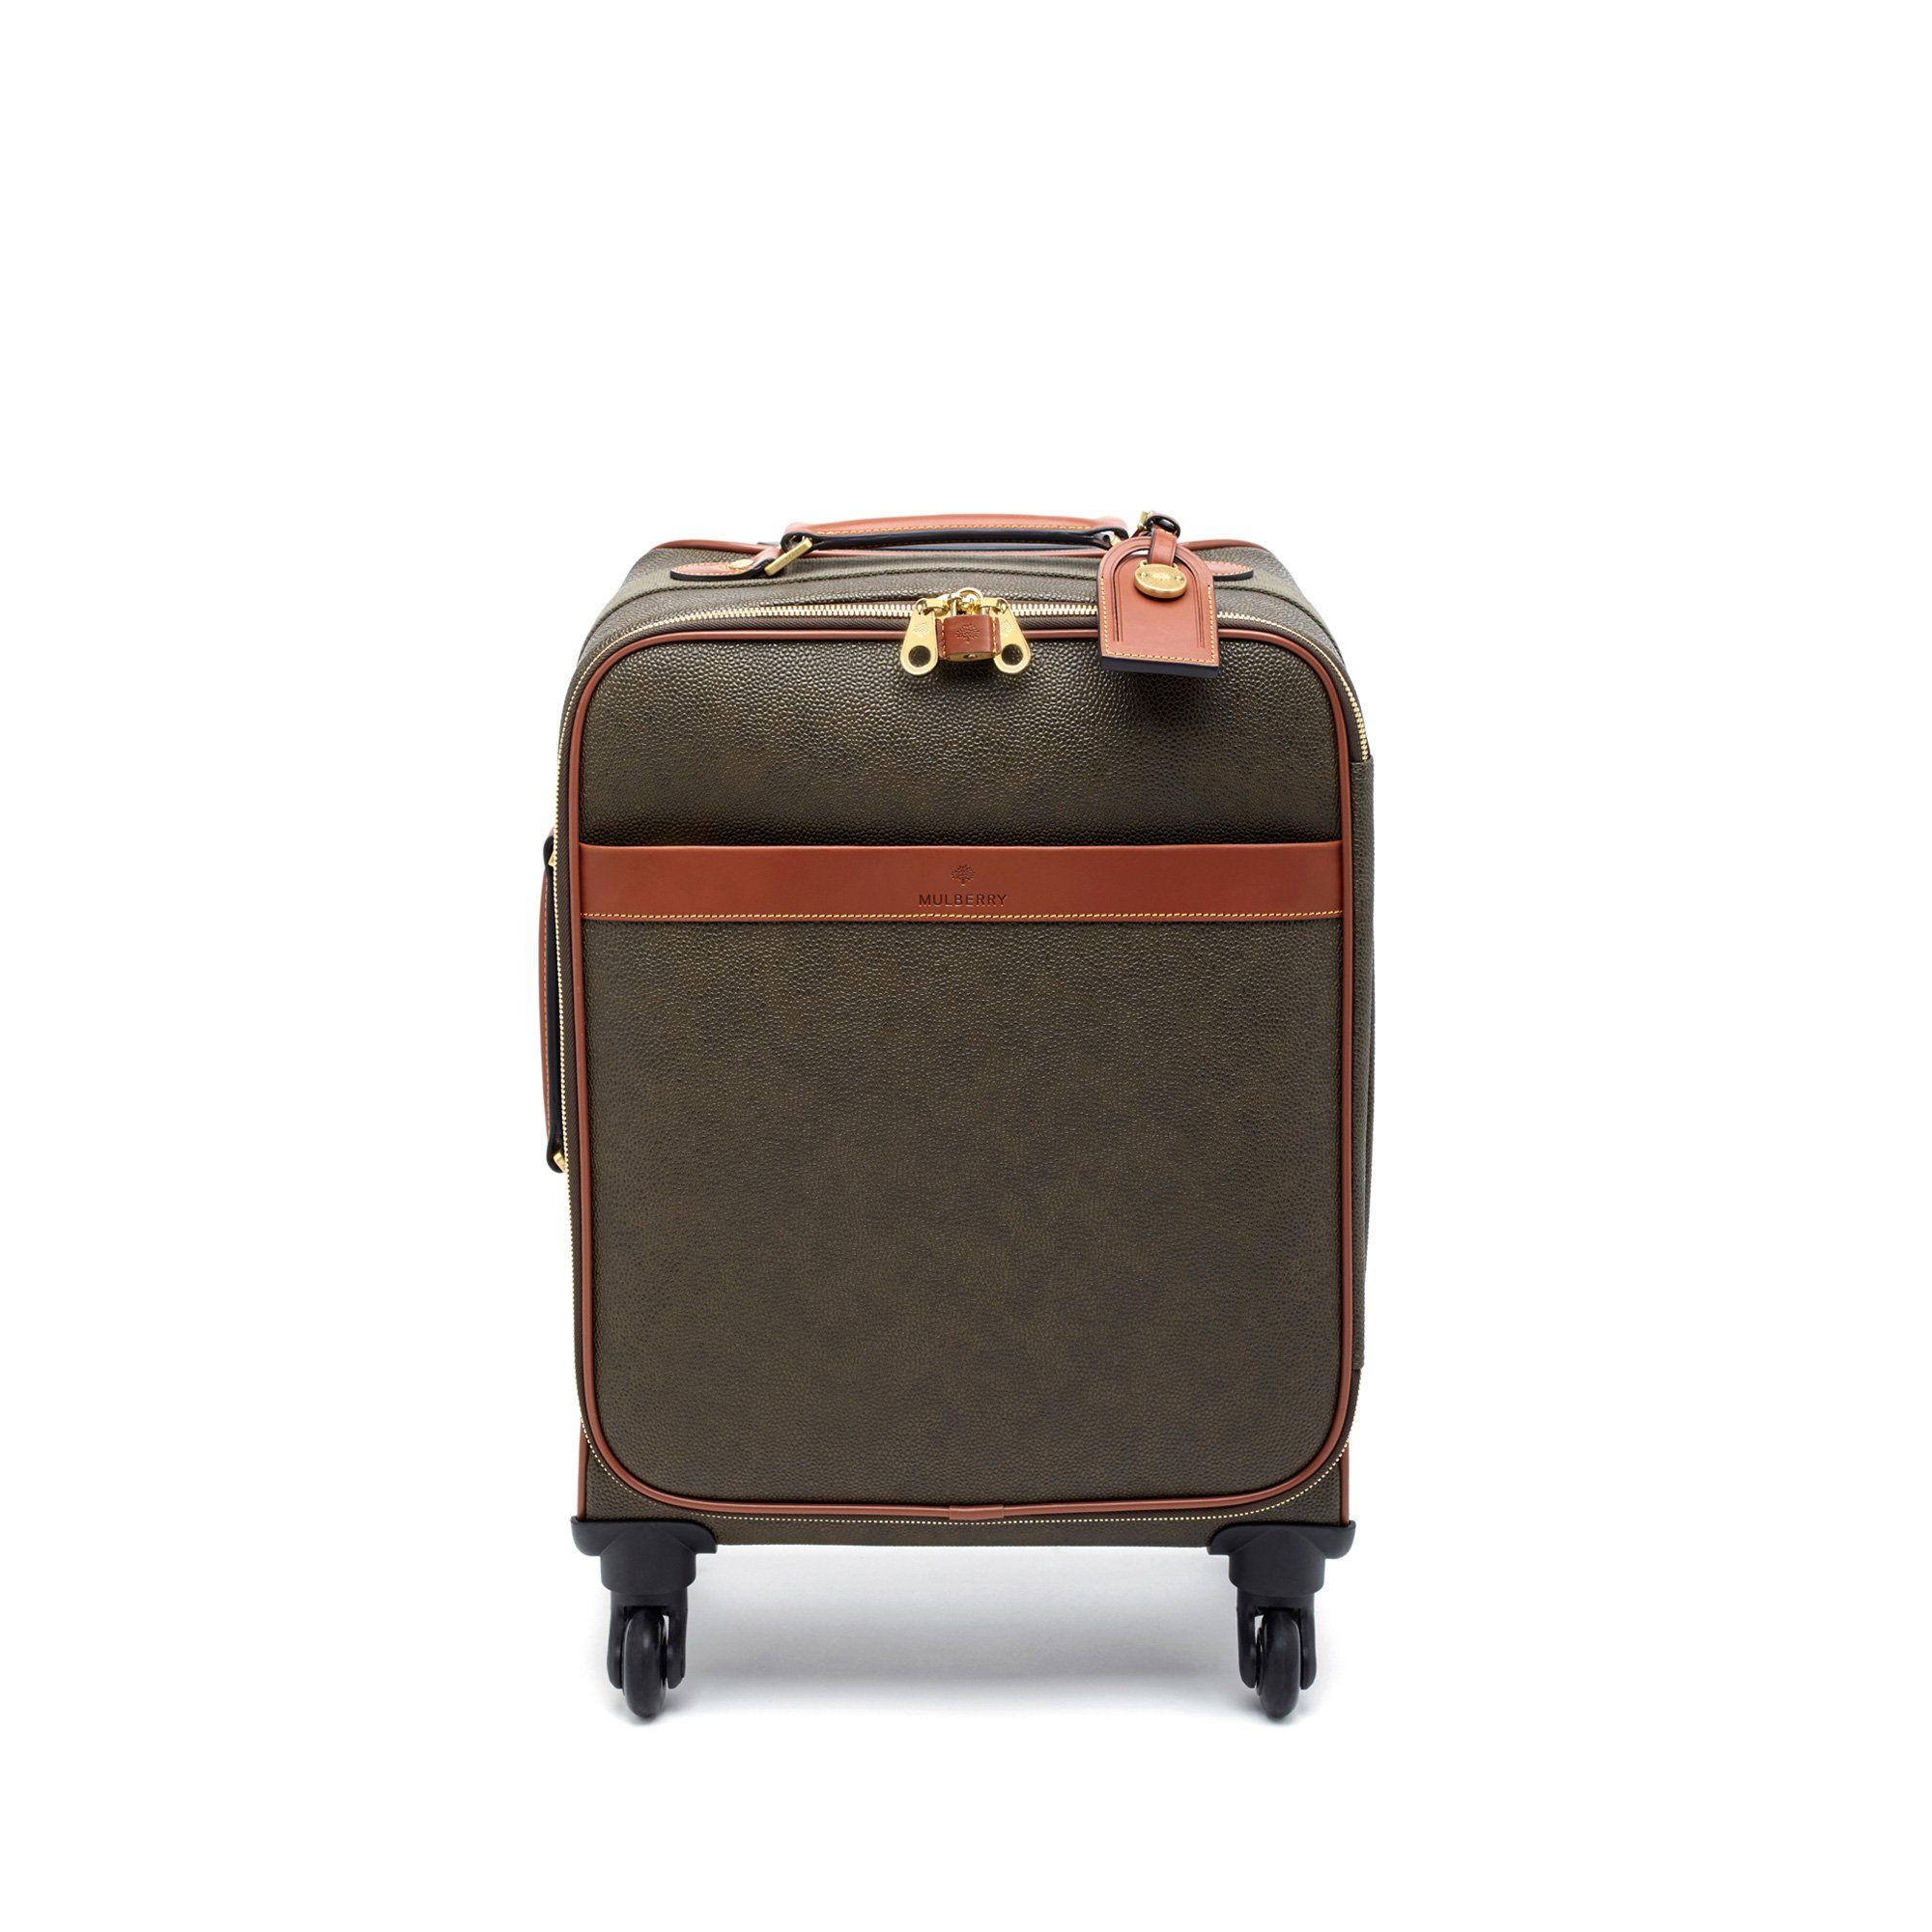 ... wholesale mulberry mens medium clipper holdall bag luggage travel women  mulberry d27a6 84245 546fe6678d05c